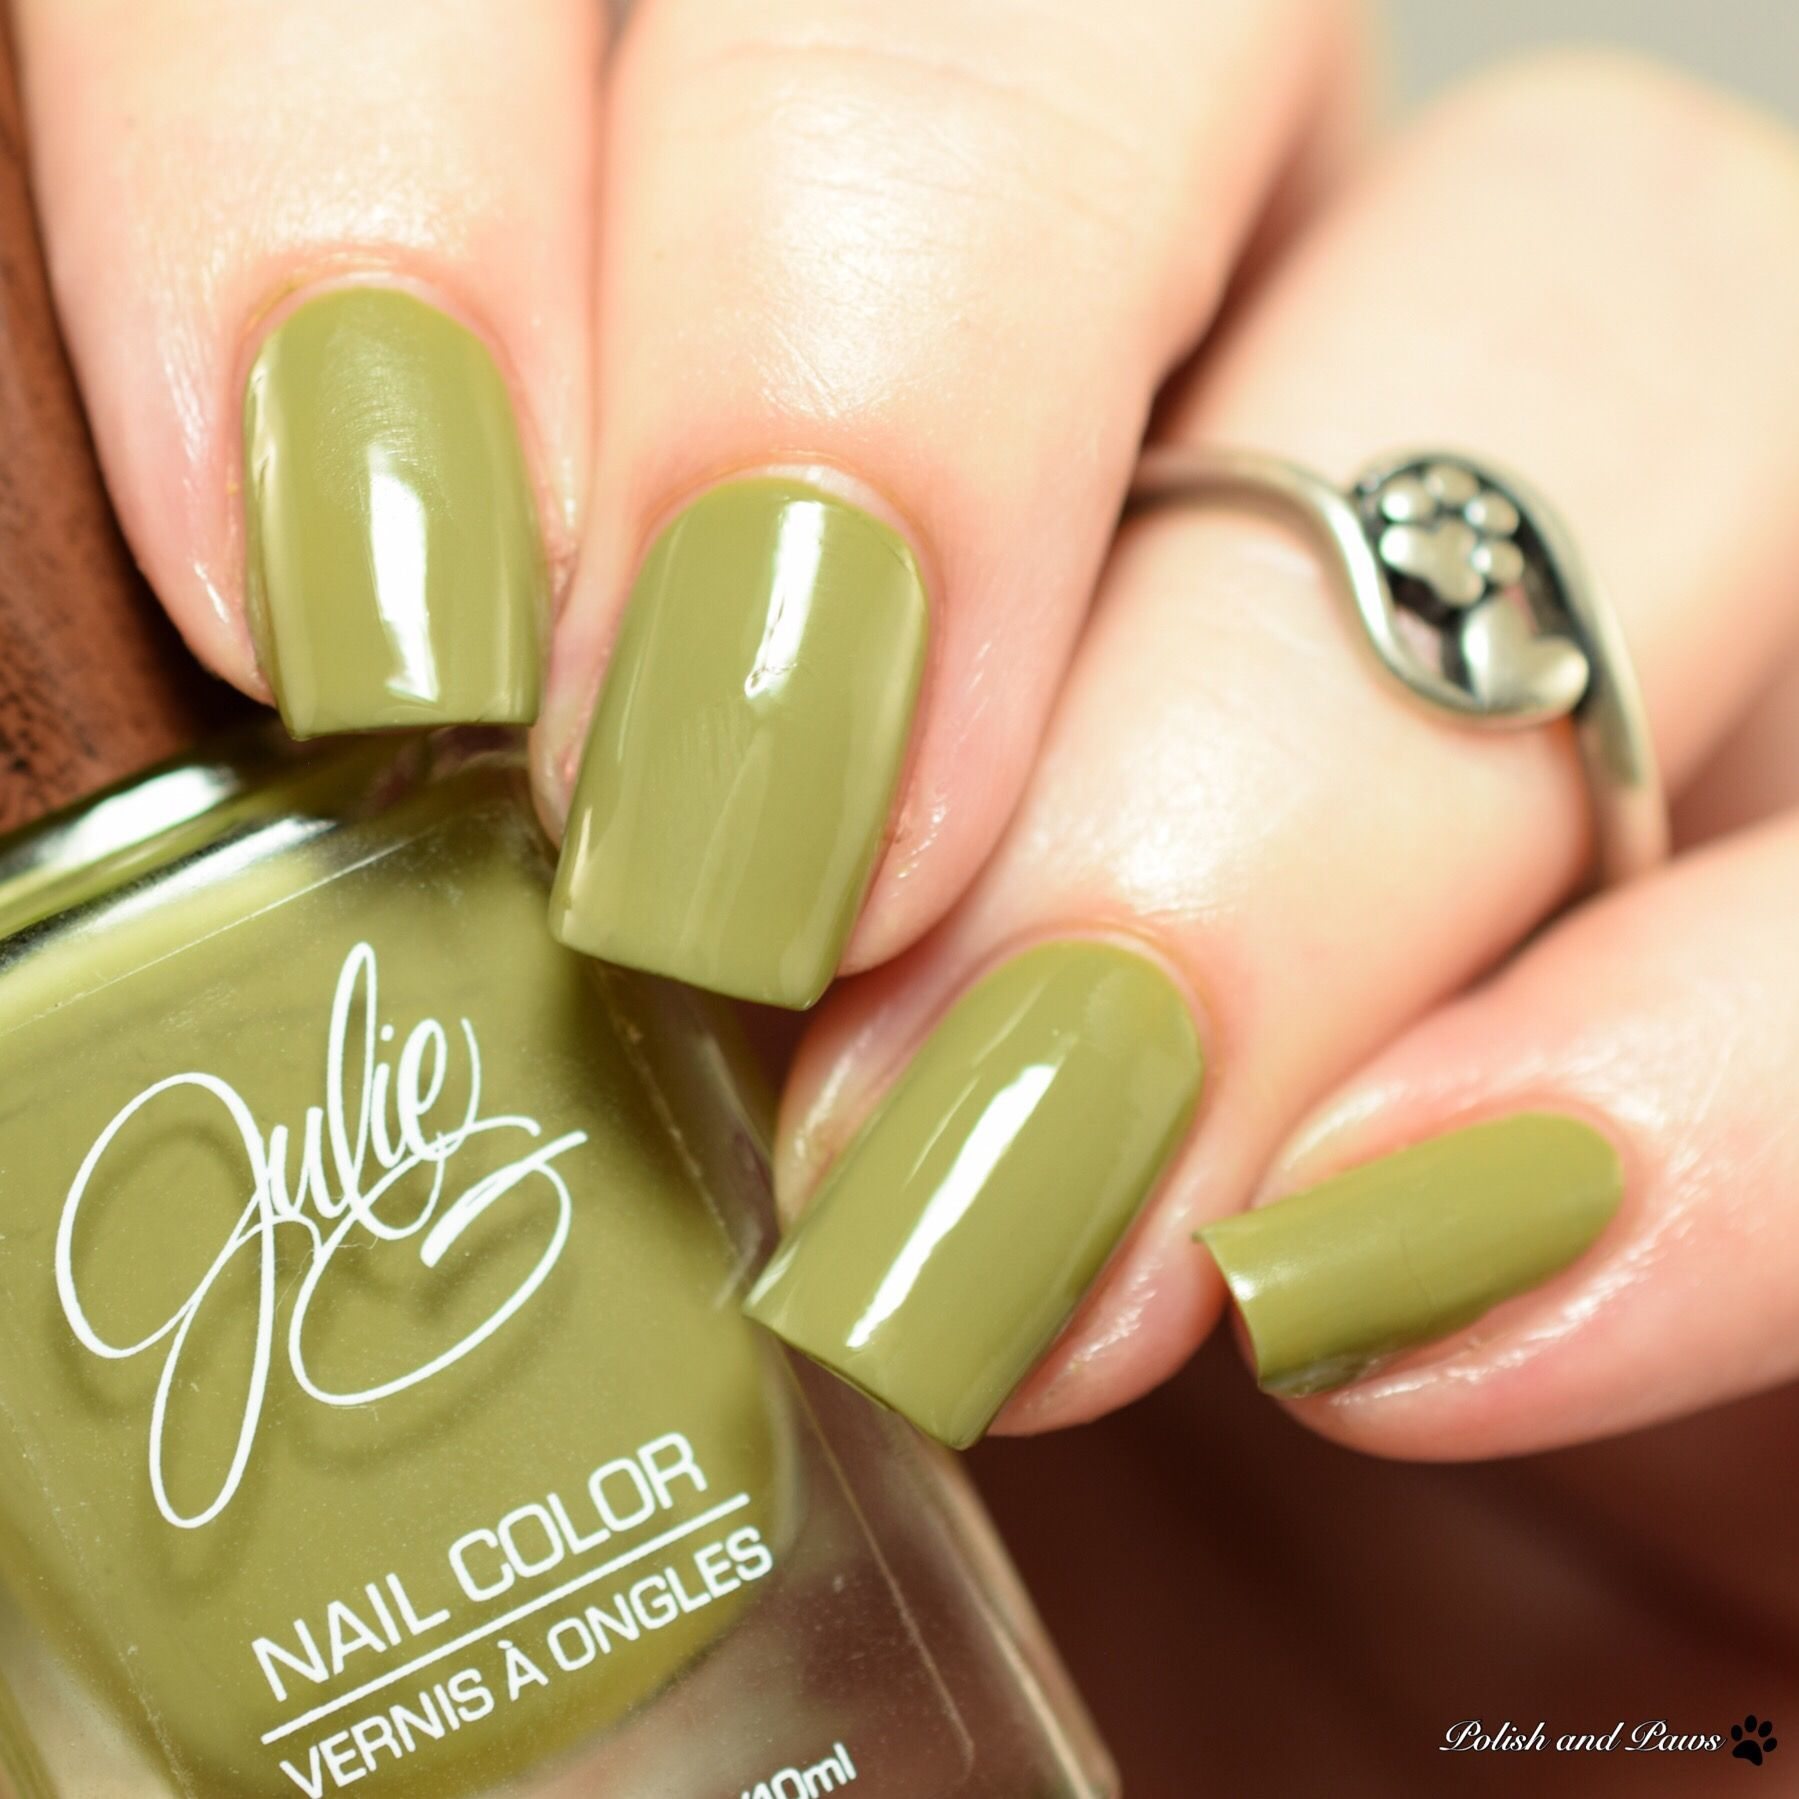 JulieG Eden | Nail Colors | Pinterest | Swatch, Beauty nails and ...